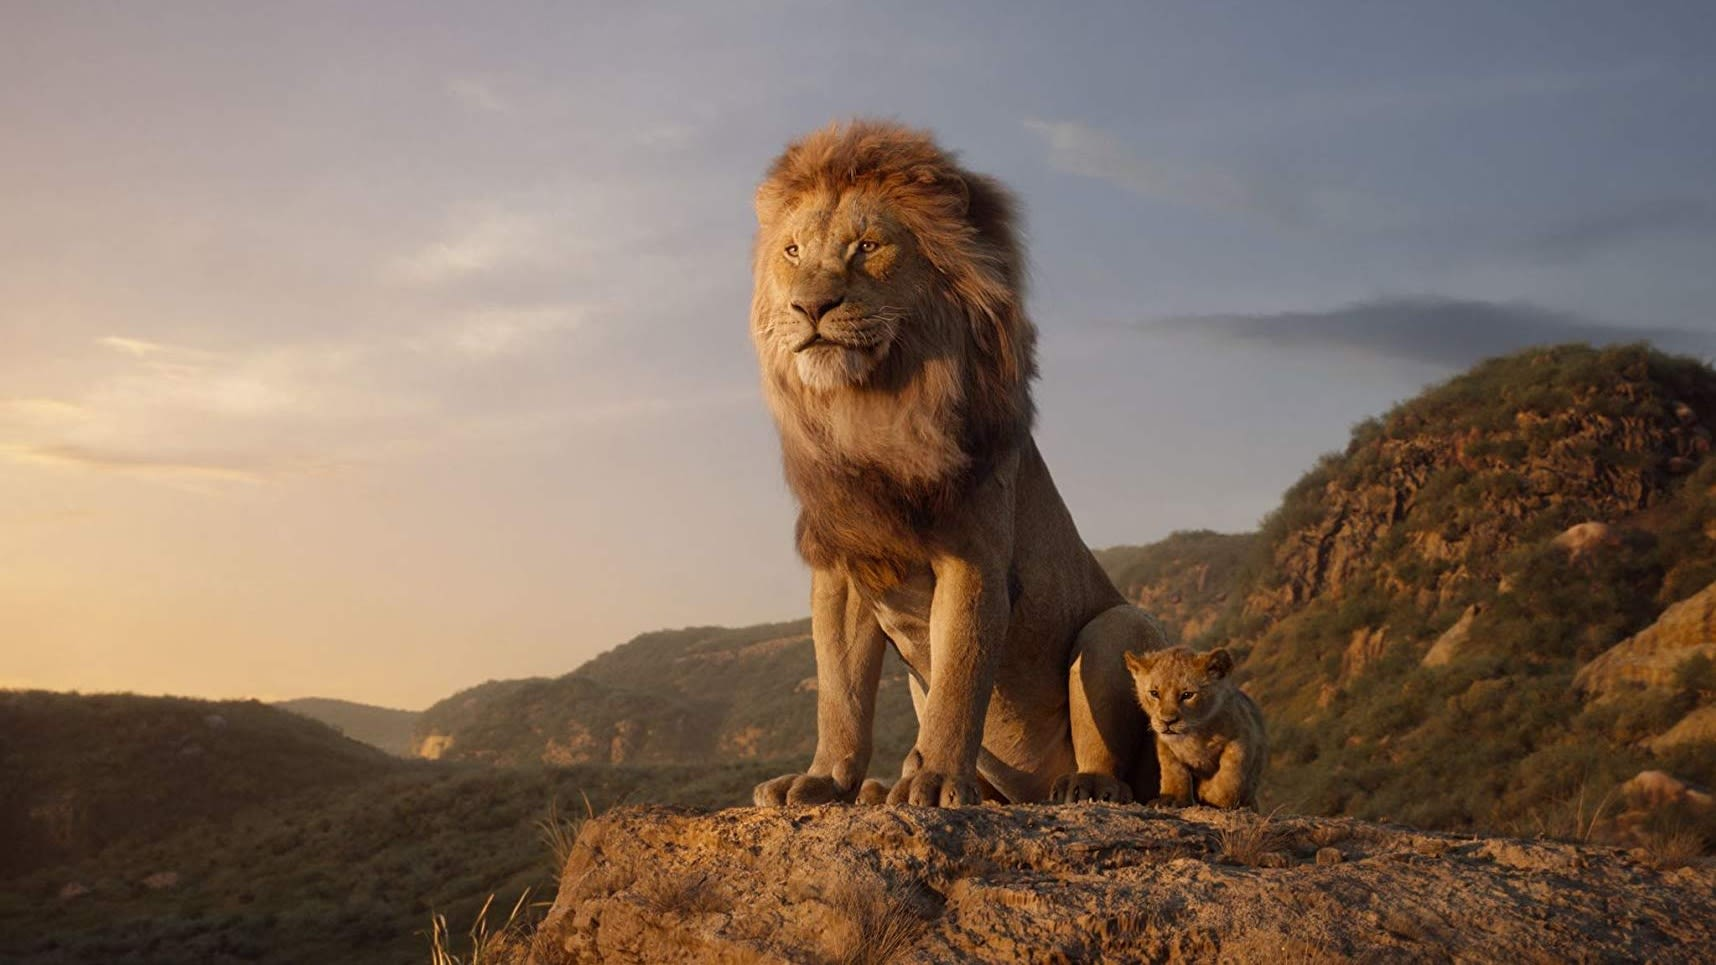 Disney's 'The Lion King' reviews are in. Here's what critics think